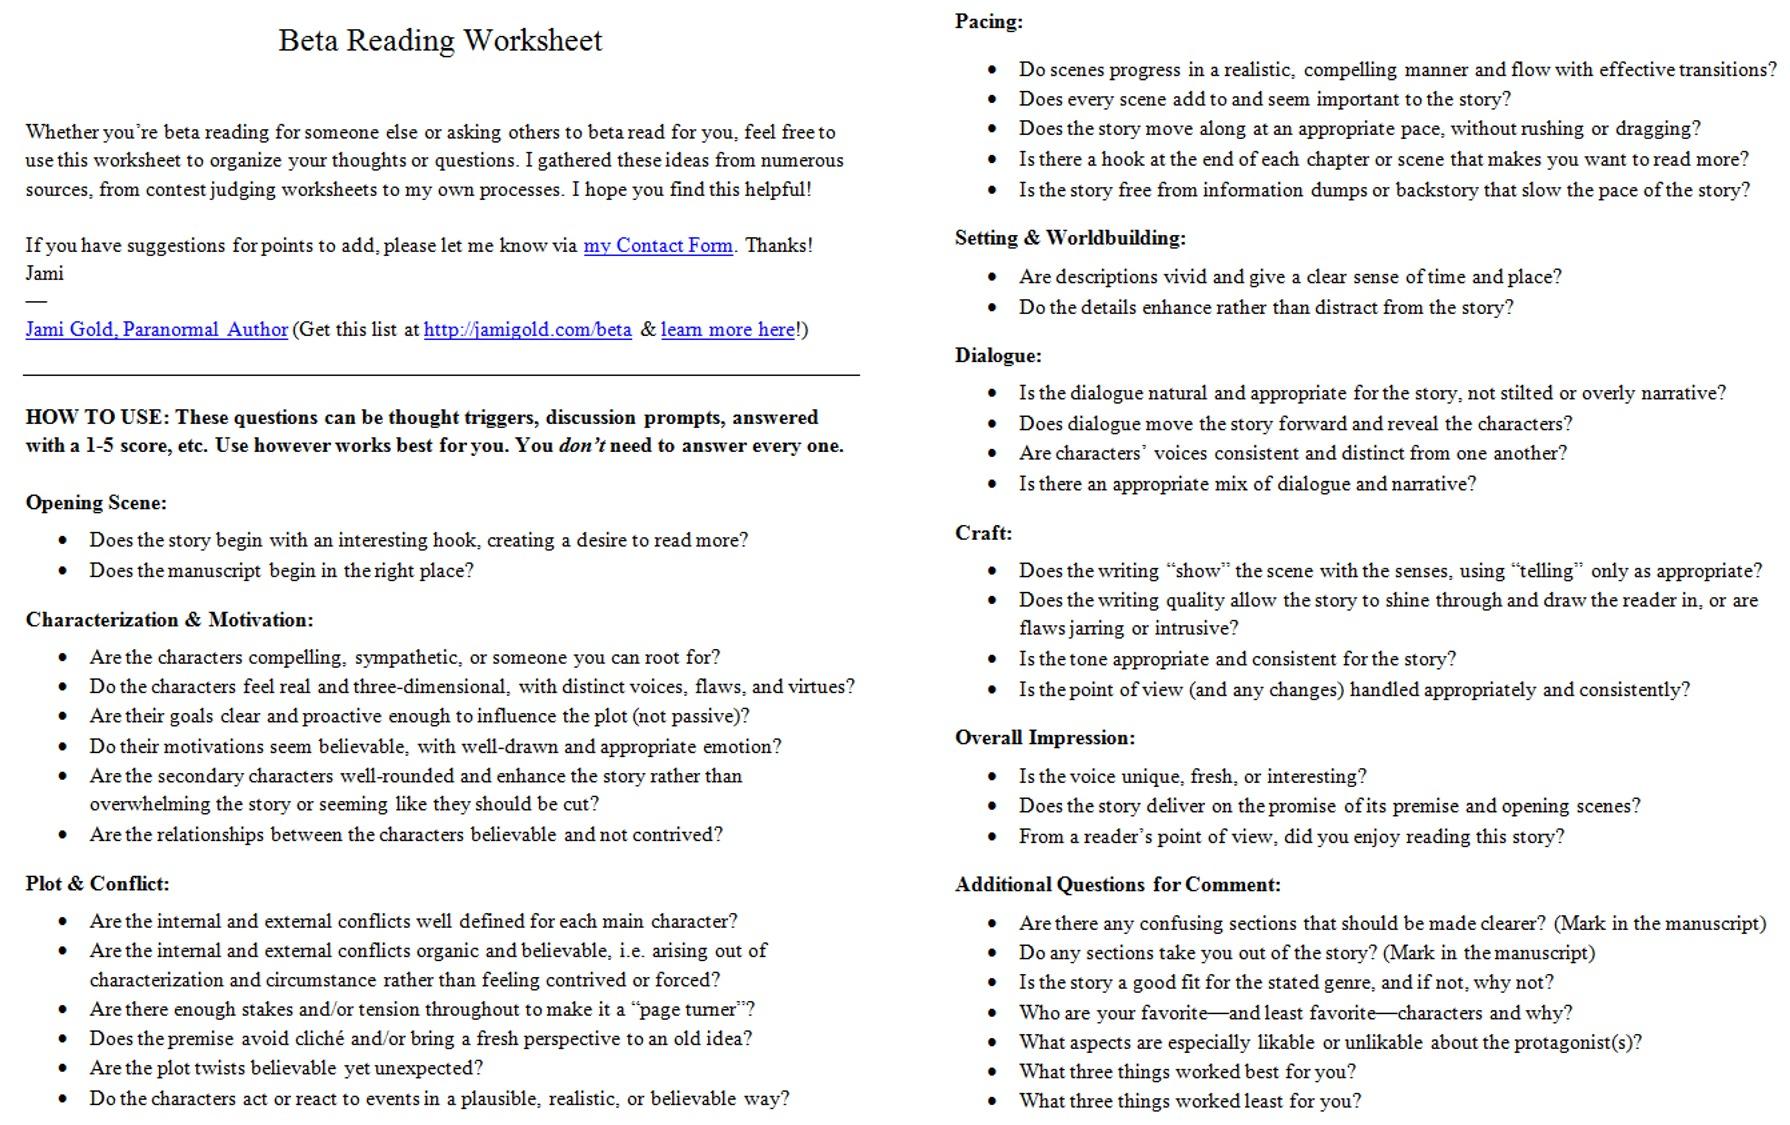 Proatmealus  Unique Worksheets For Writers  Jami Gold Paranormal Author With Outstanding Screen Shot Of The Twopage Beta Reading Worksheet With Appealing Worksheet  Lewis Structures Also Worksheet Stative Verbs In Addition Fun Subtraction Worksheets And Finding Multiples Worksheet As Well As Stem And Leaf Worksheet Additionally Worksheet Box And Whisker Plots From Jamigoldcom With Proatmealus  Outstanding Worksheets For Writers  Jami Gold Paranormal Author With Appealing Screen Shot Of The Twopage Beta Reading Worksheet And Unique Worksheet  Lewis Structures Also Worksheet Stative Verbs In Addition Fun Subtraction Worksheets From Jamigoldcom